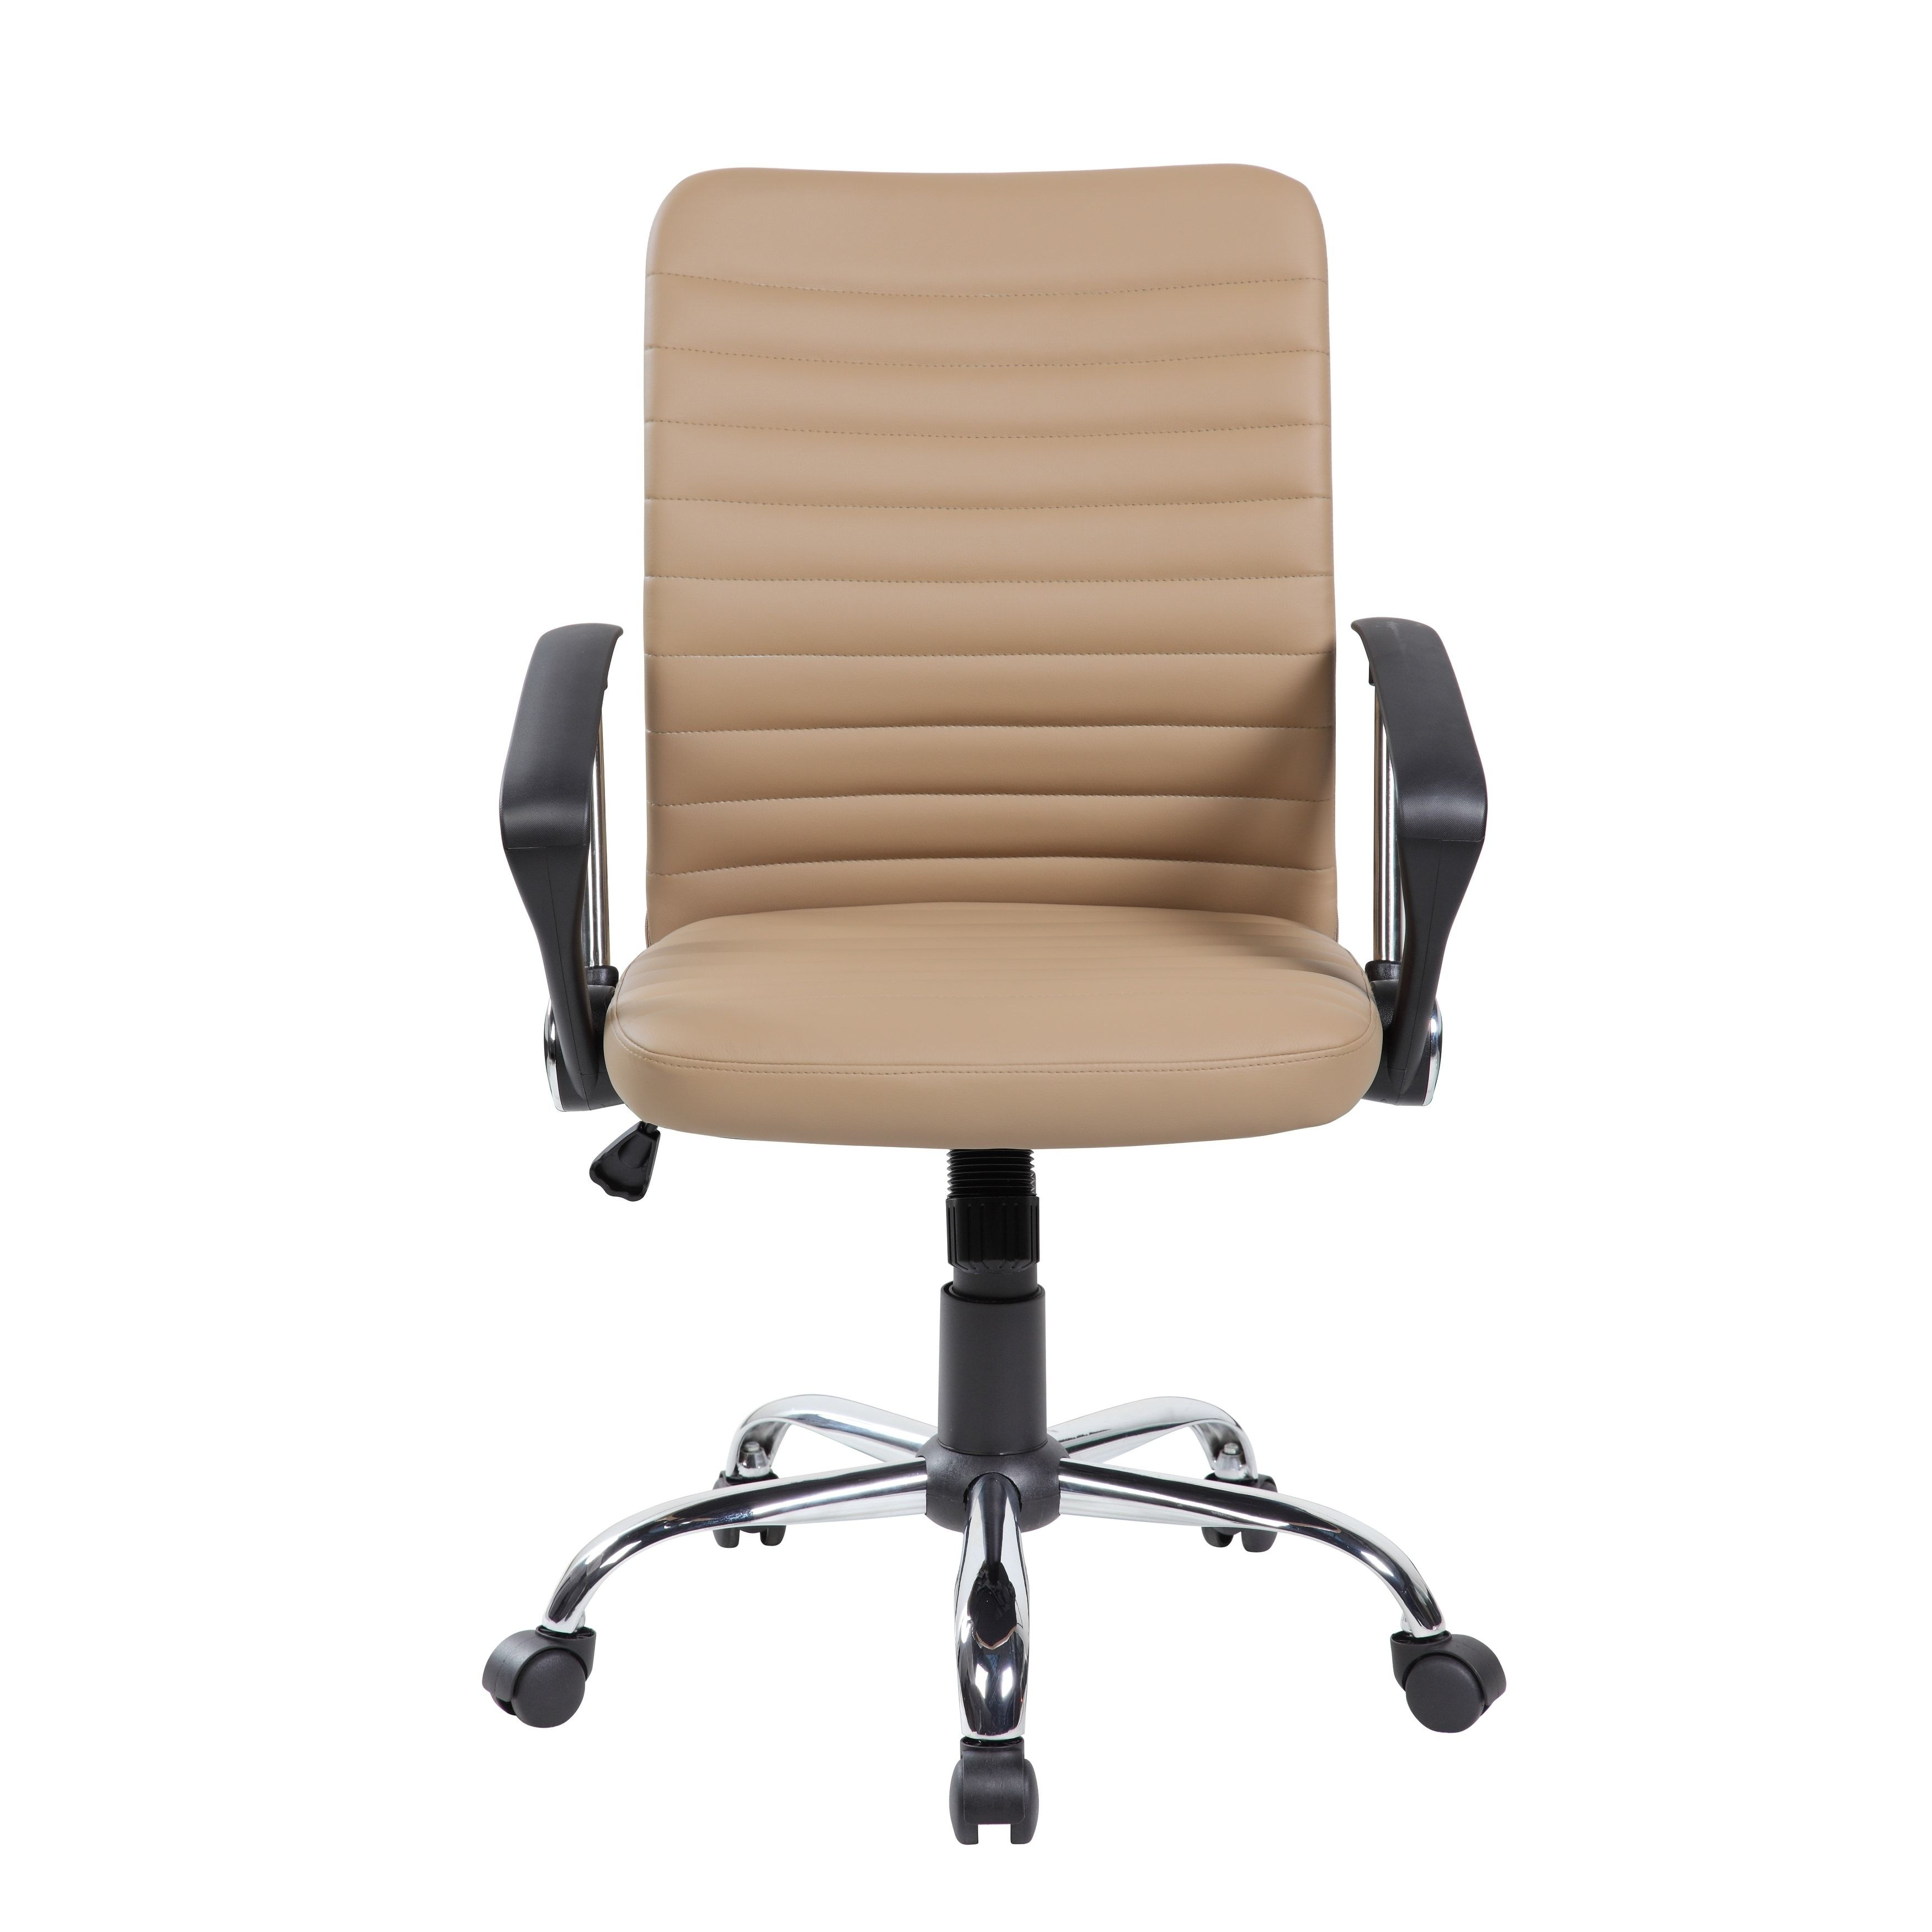 United economic modern pu leather home office desk chair beige